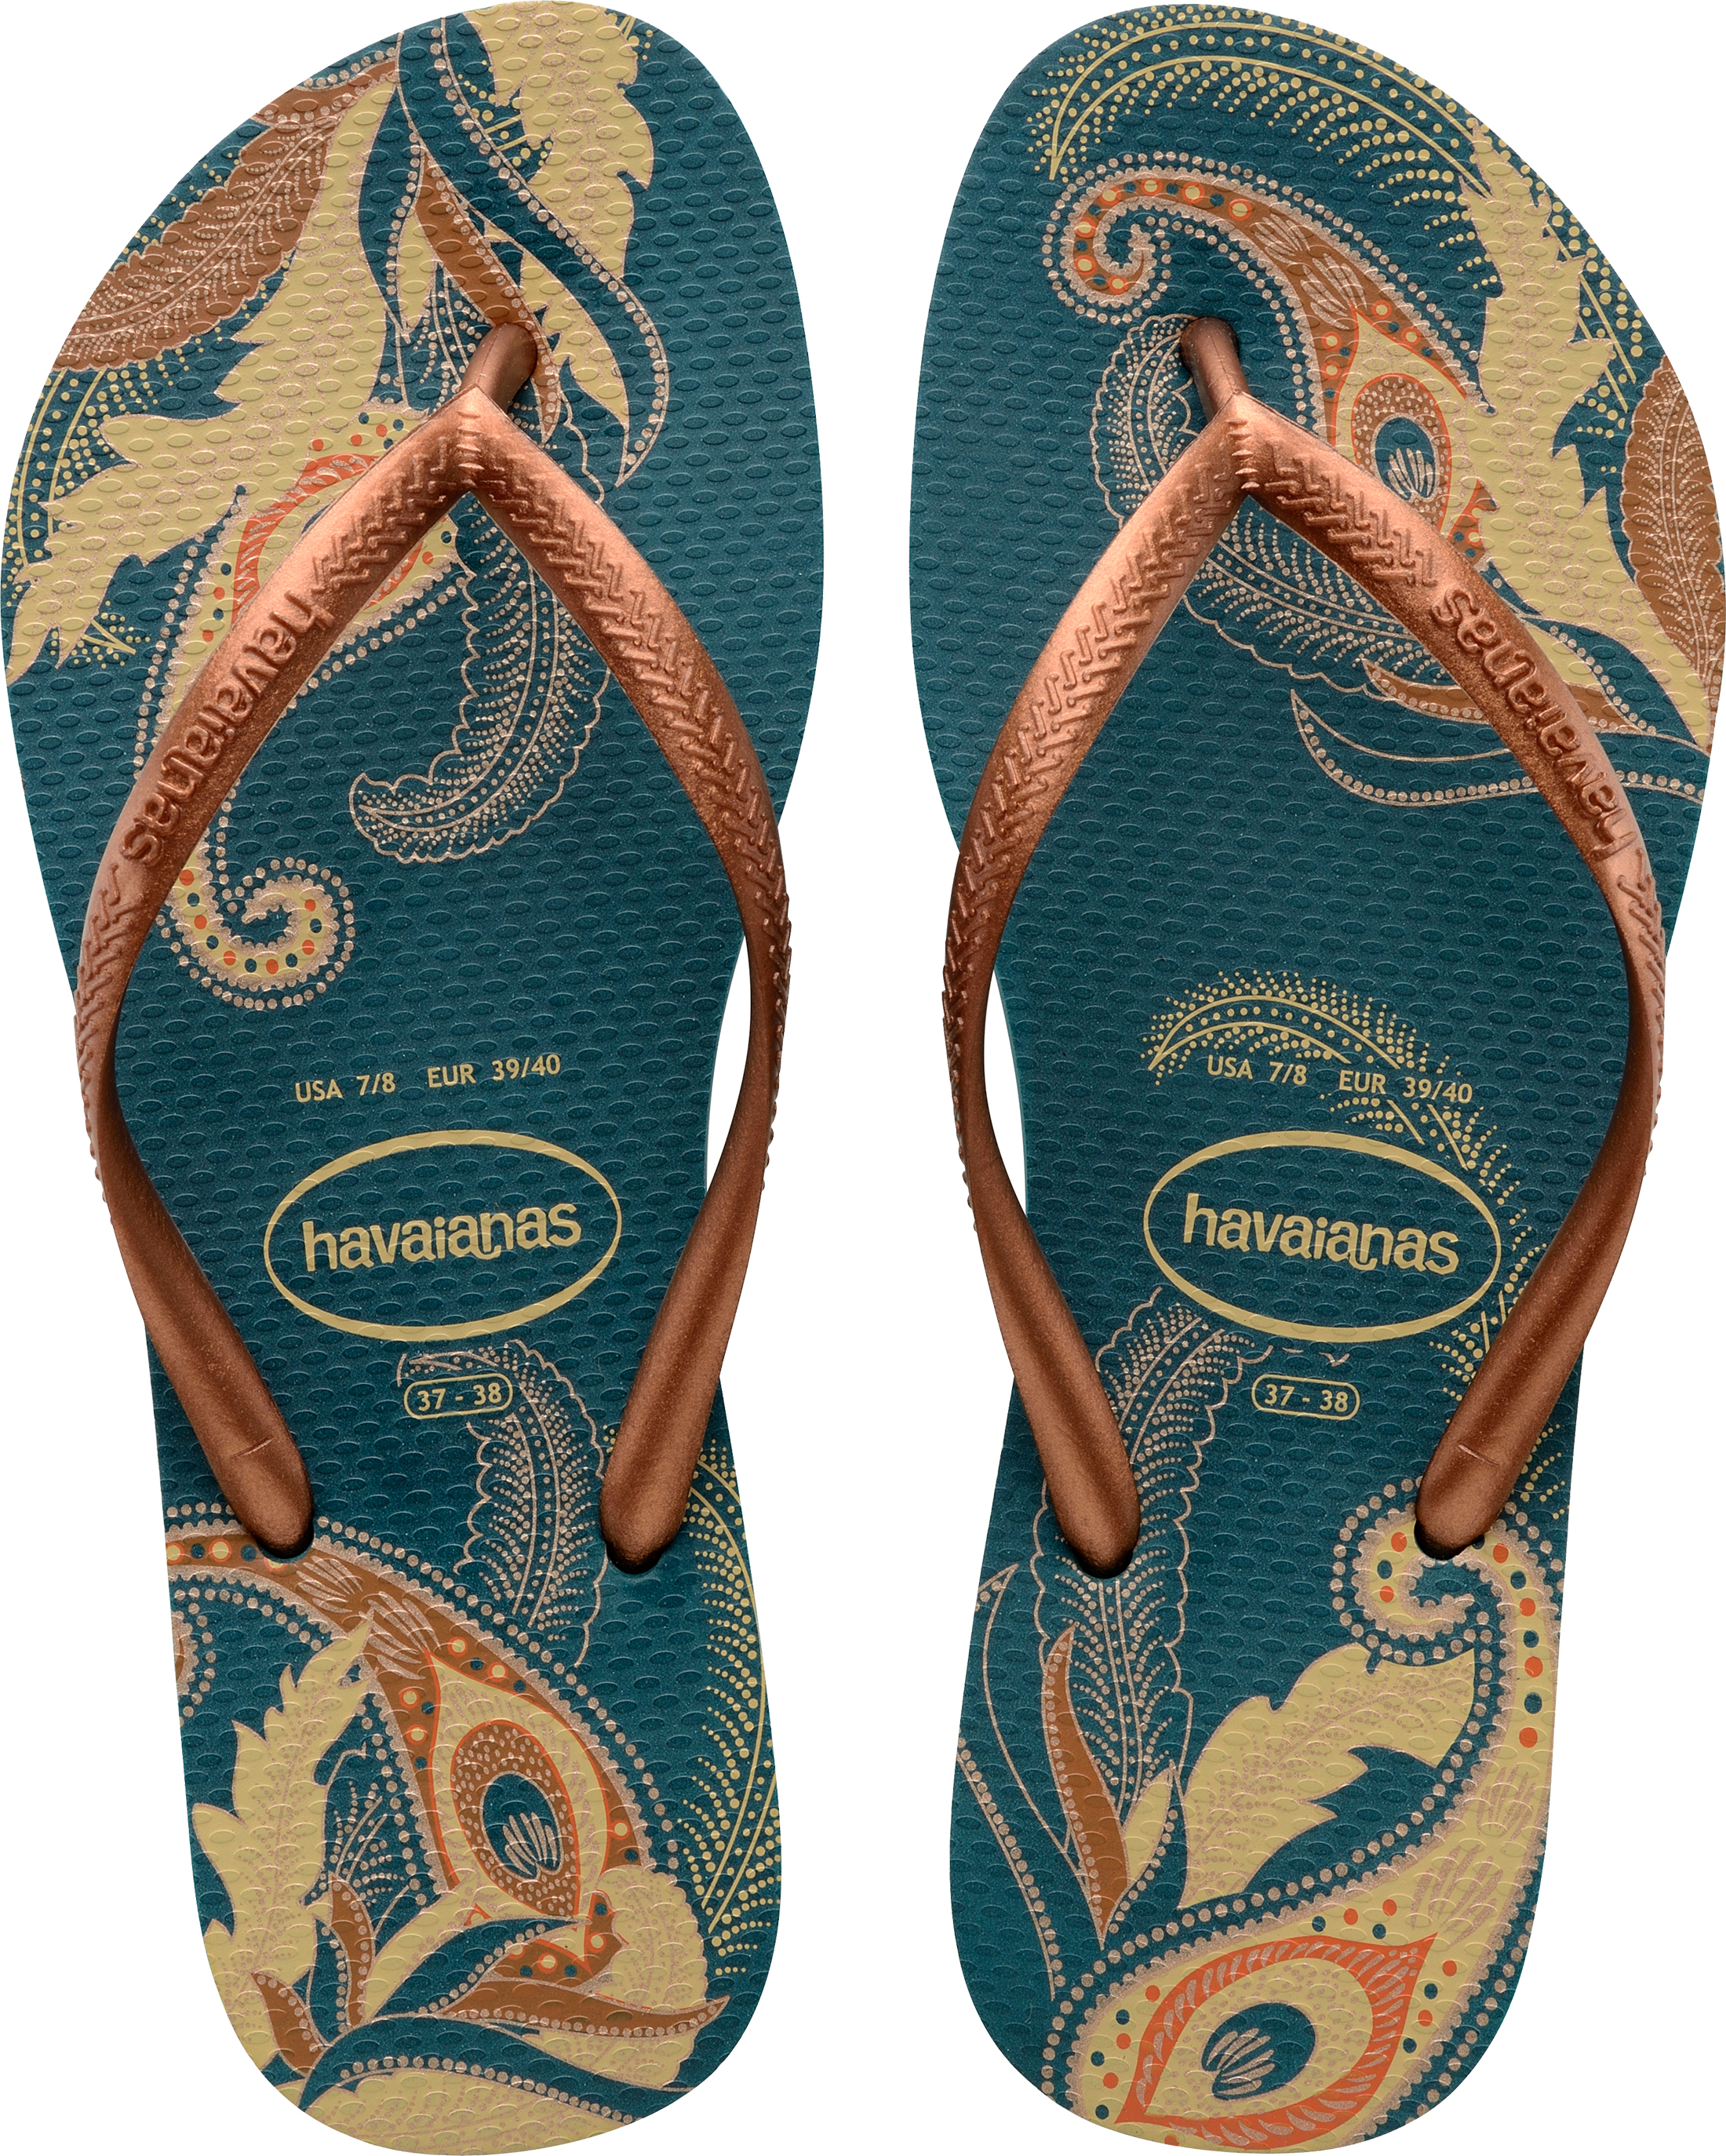 73390983e Havaianas Petroleum Slim Organic Size 8 Flip Flops. About this product.  Picture 1 of 5  Picture 2 of 5 ...